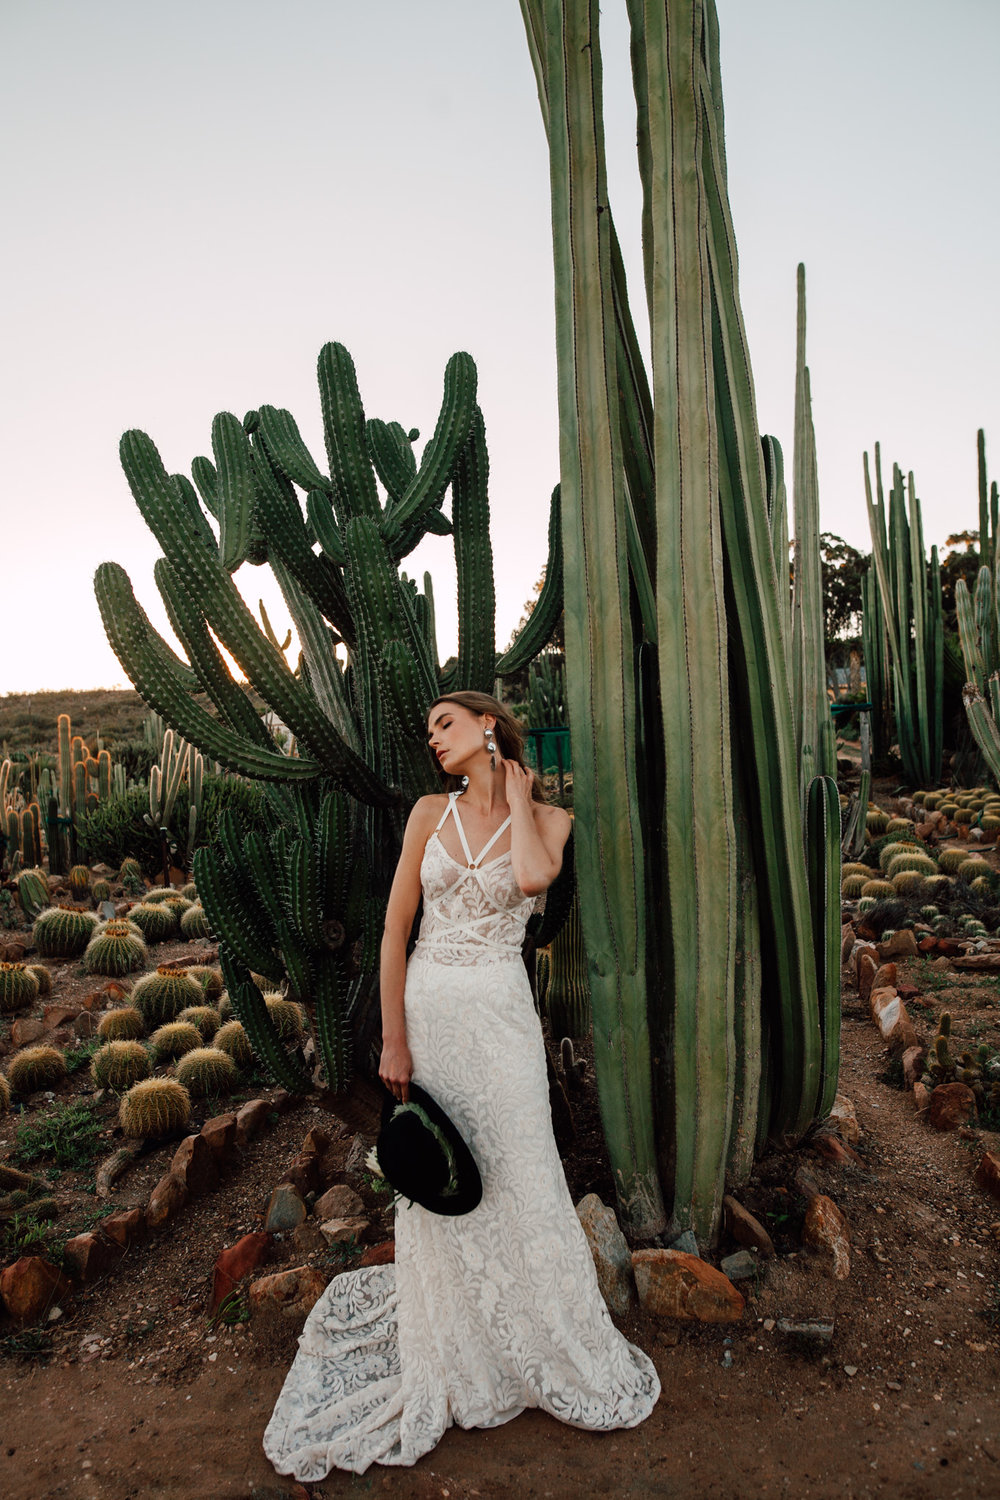 Cape-Town-Pia-Anna-Christian-Wedding-Photography-South-Africa-Bride-Cactus-5.jpg